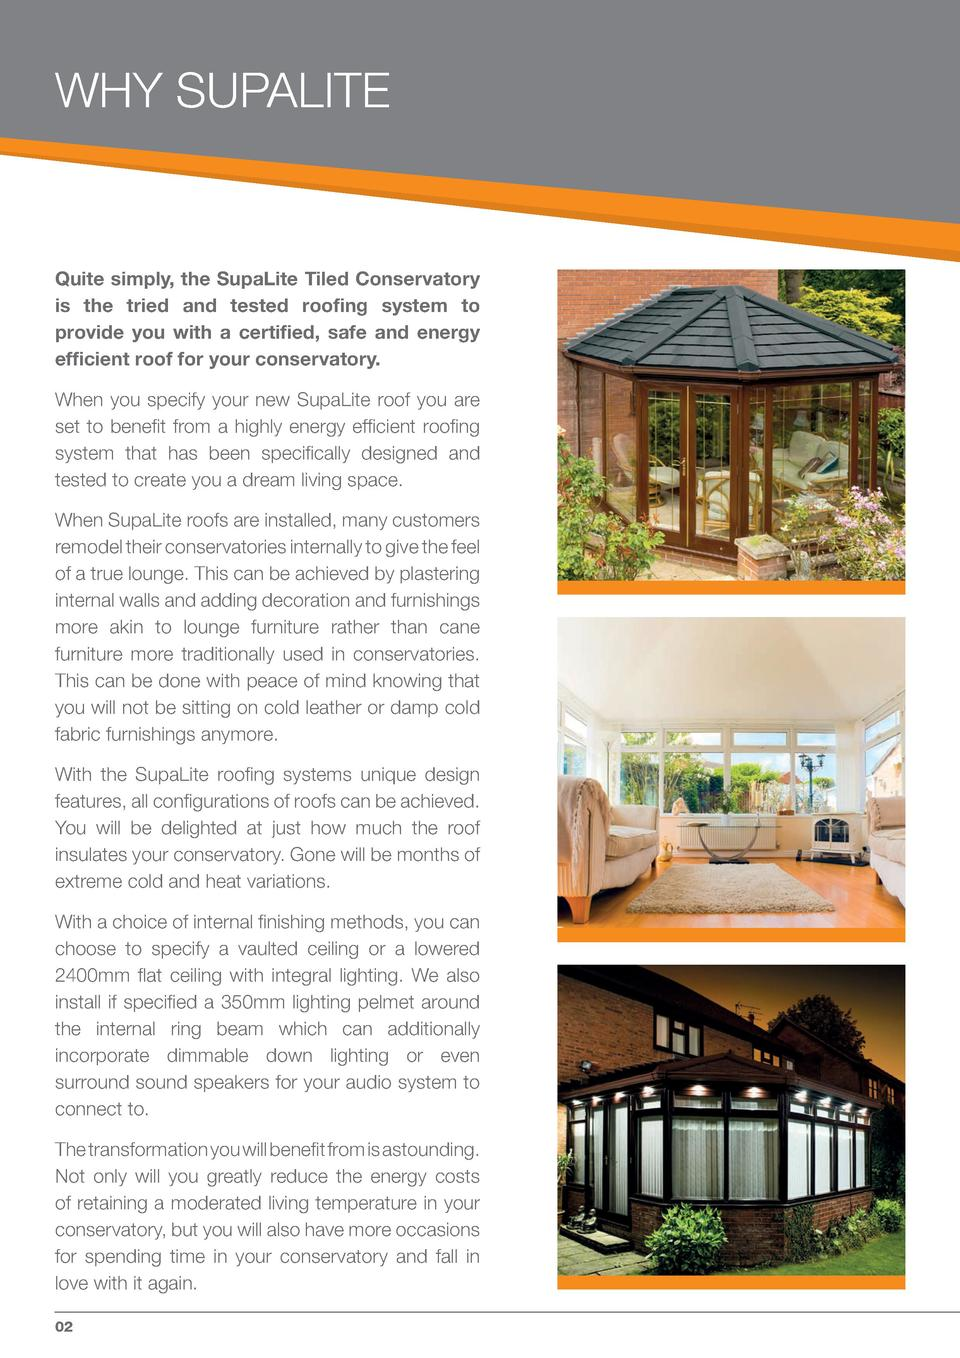 WHY SUPALITE  Quite simply, the SupaLite Tiled Conservatory is the tried and tested roofing system to provide you with a c...